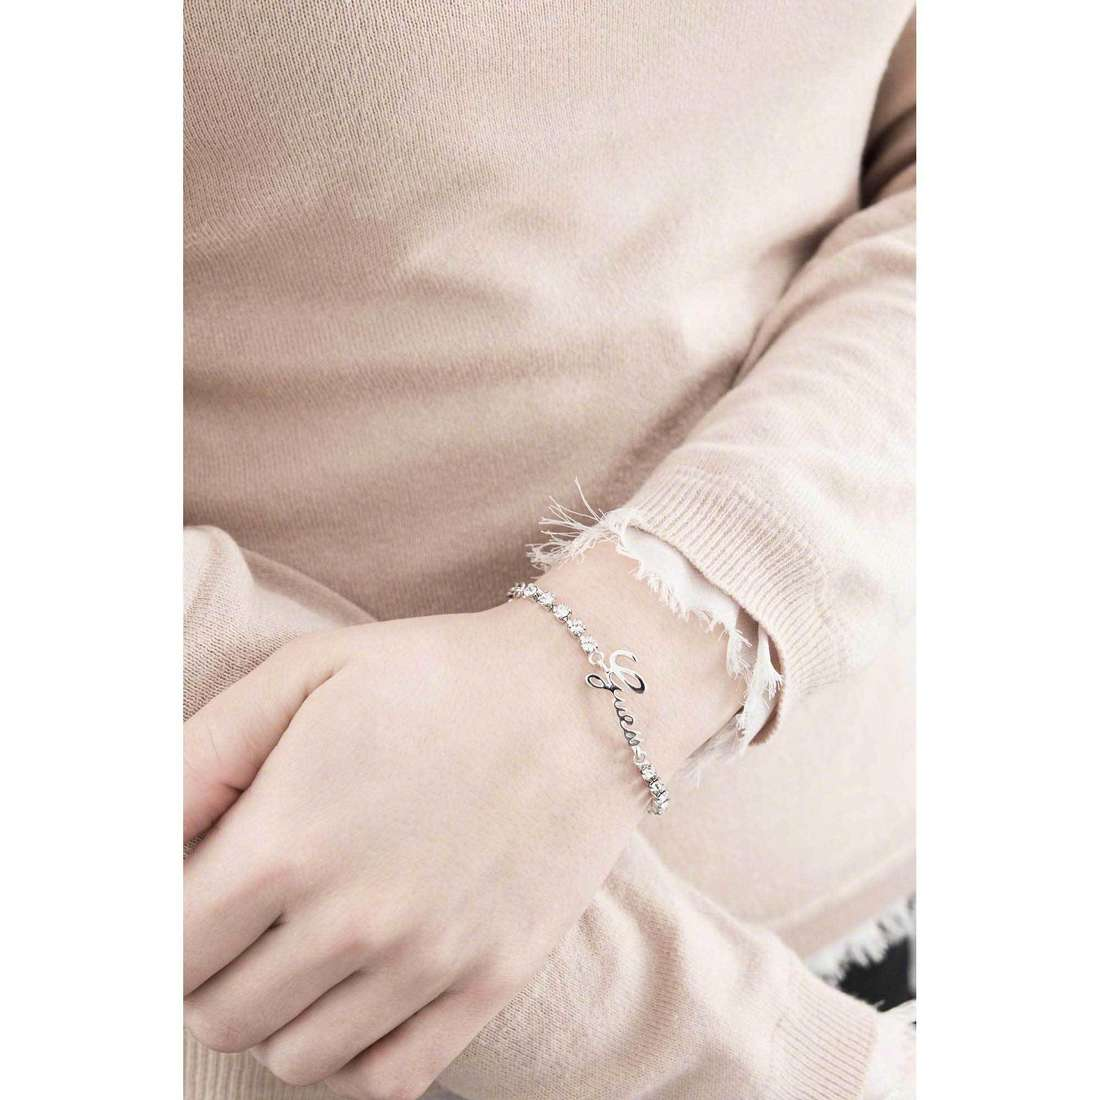 Guess bracelets Boxset woman UBS21501-S indosso